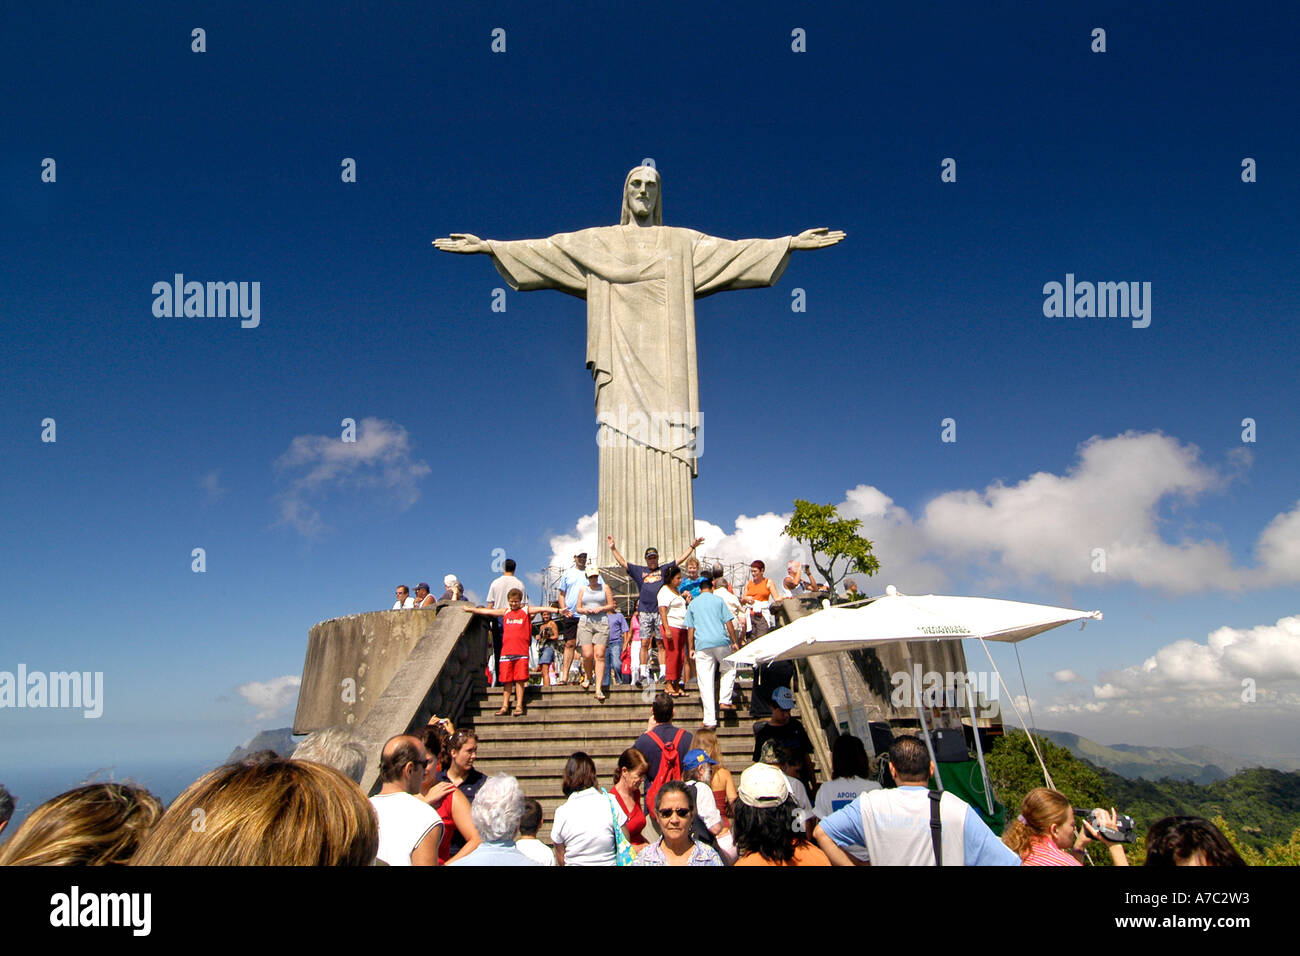 Tourists at Statue of Christ the Redeemer, Corcovado Mountain, Rio de Janeiro, Brazil - Stock Image